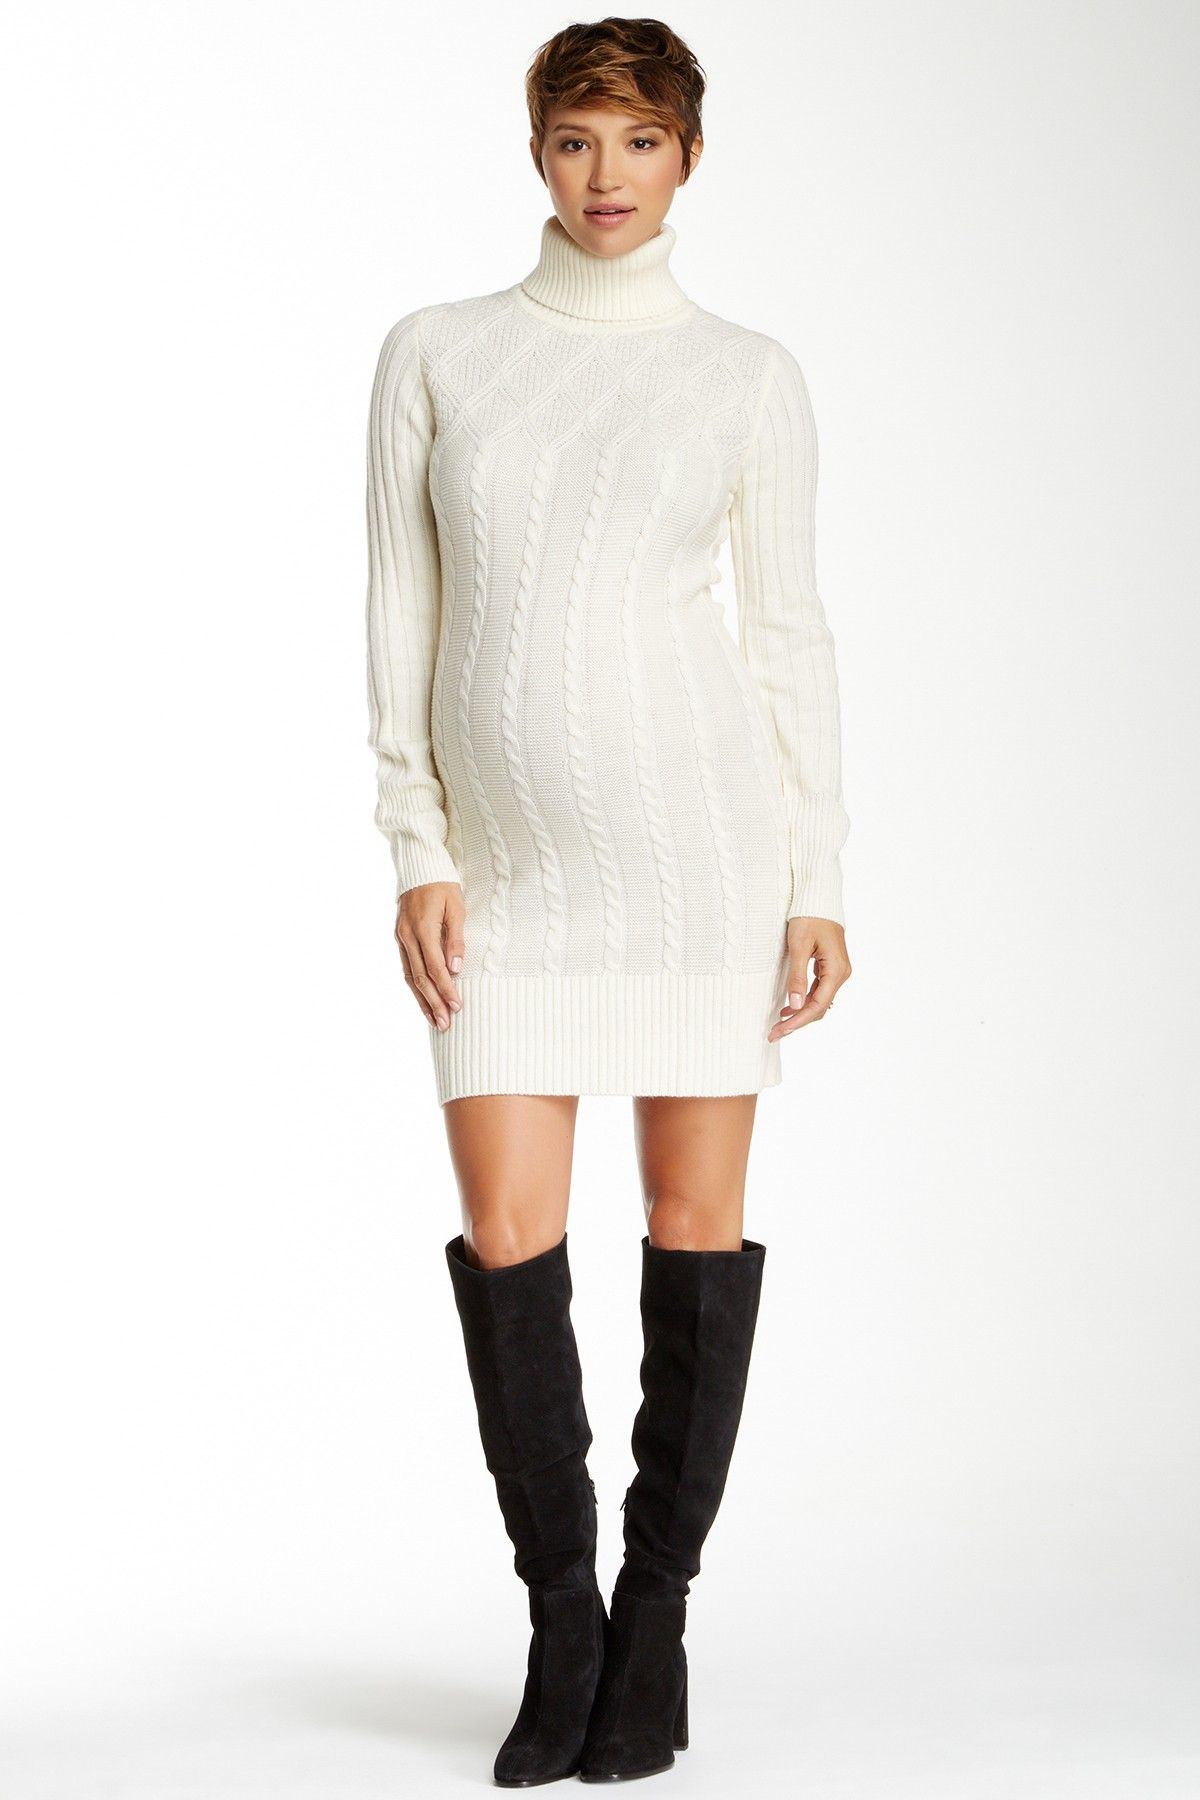 Erica cable knit turtleneck sweater dress by momo maternity on erica cable knit turtleneck sweater dress by momo maternity on hautelook ombrellifo Image collections